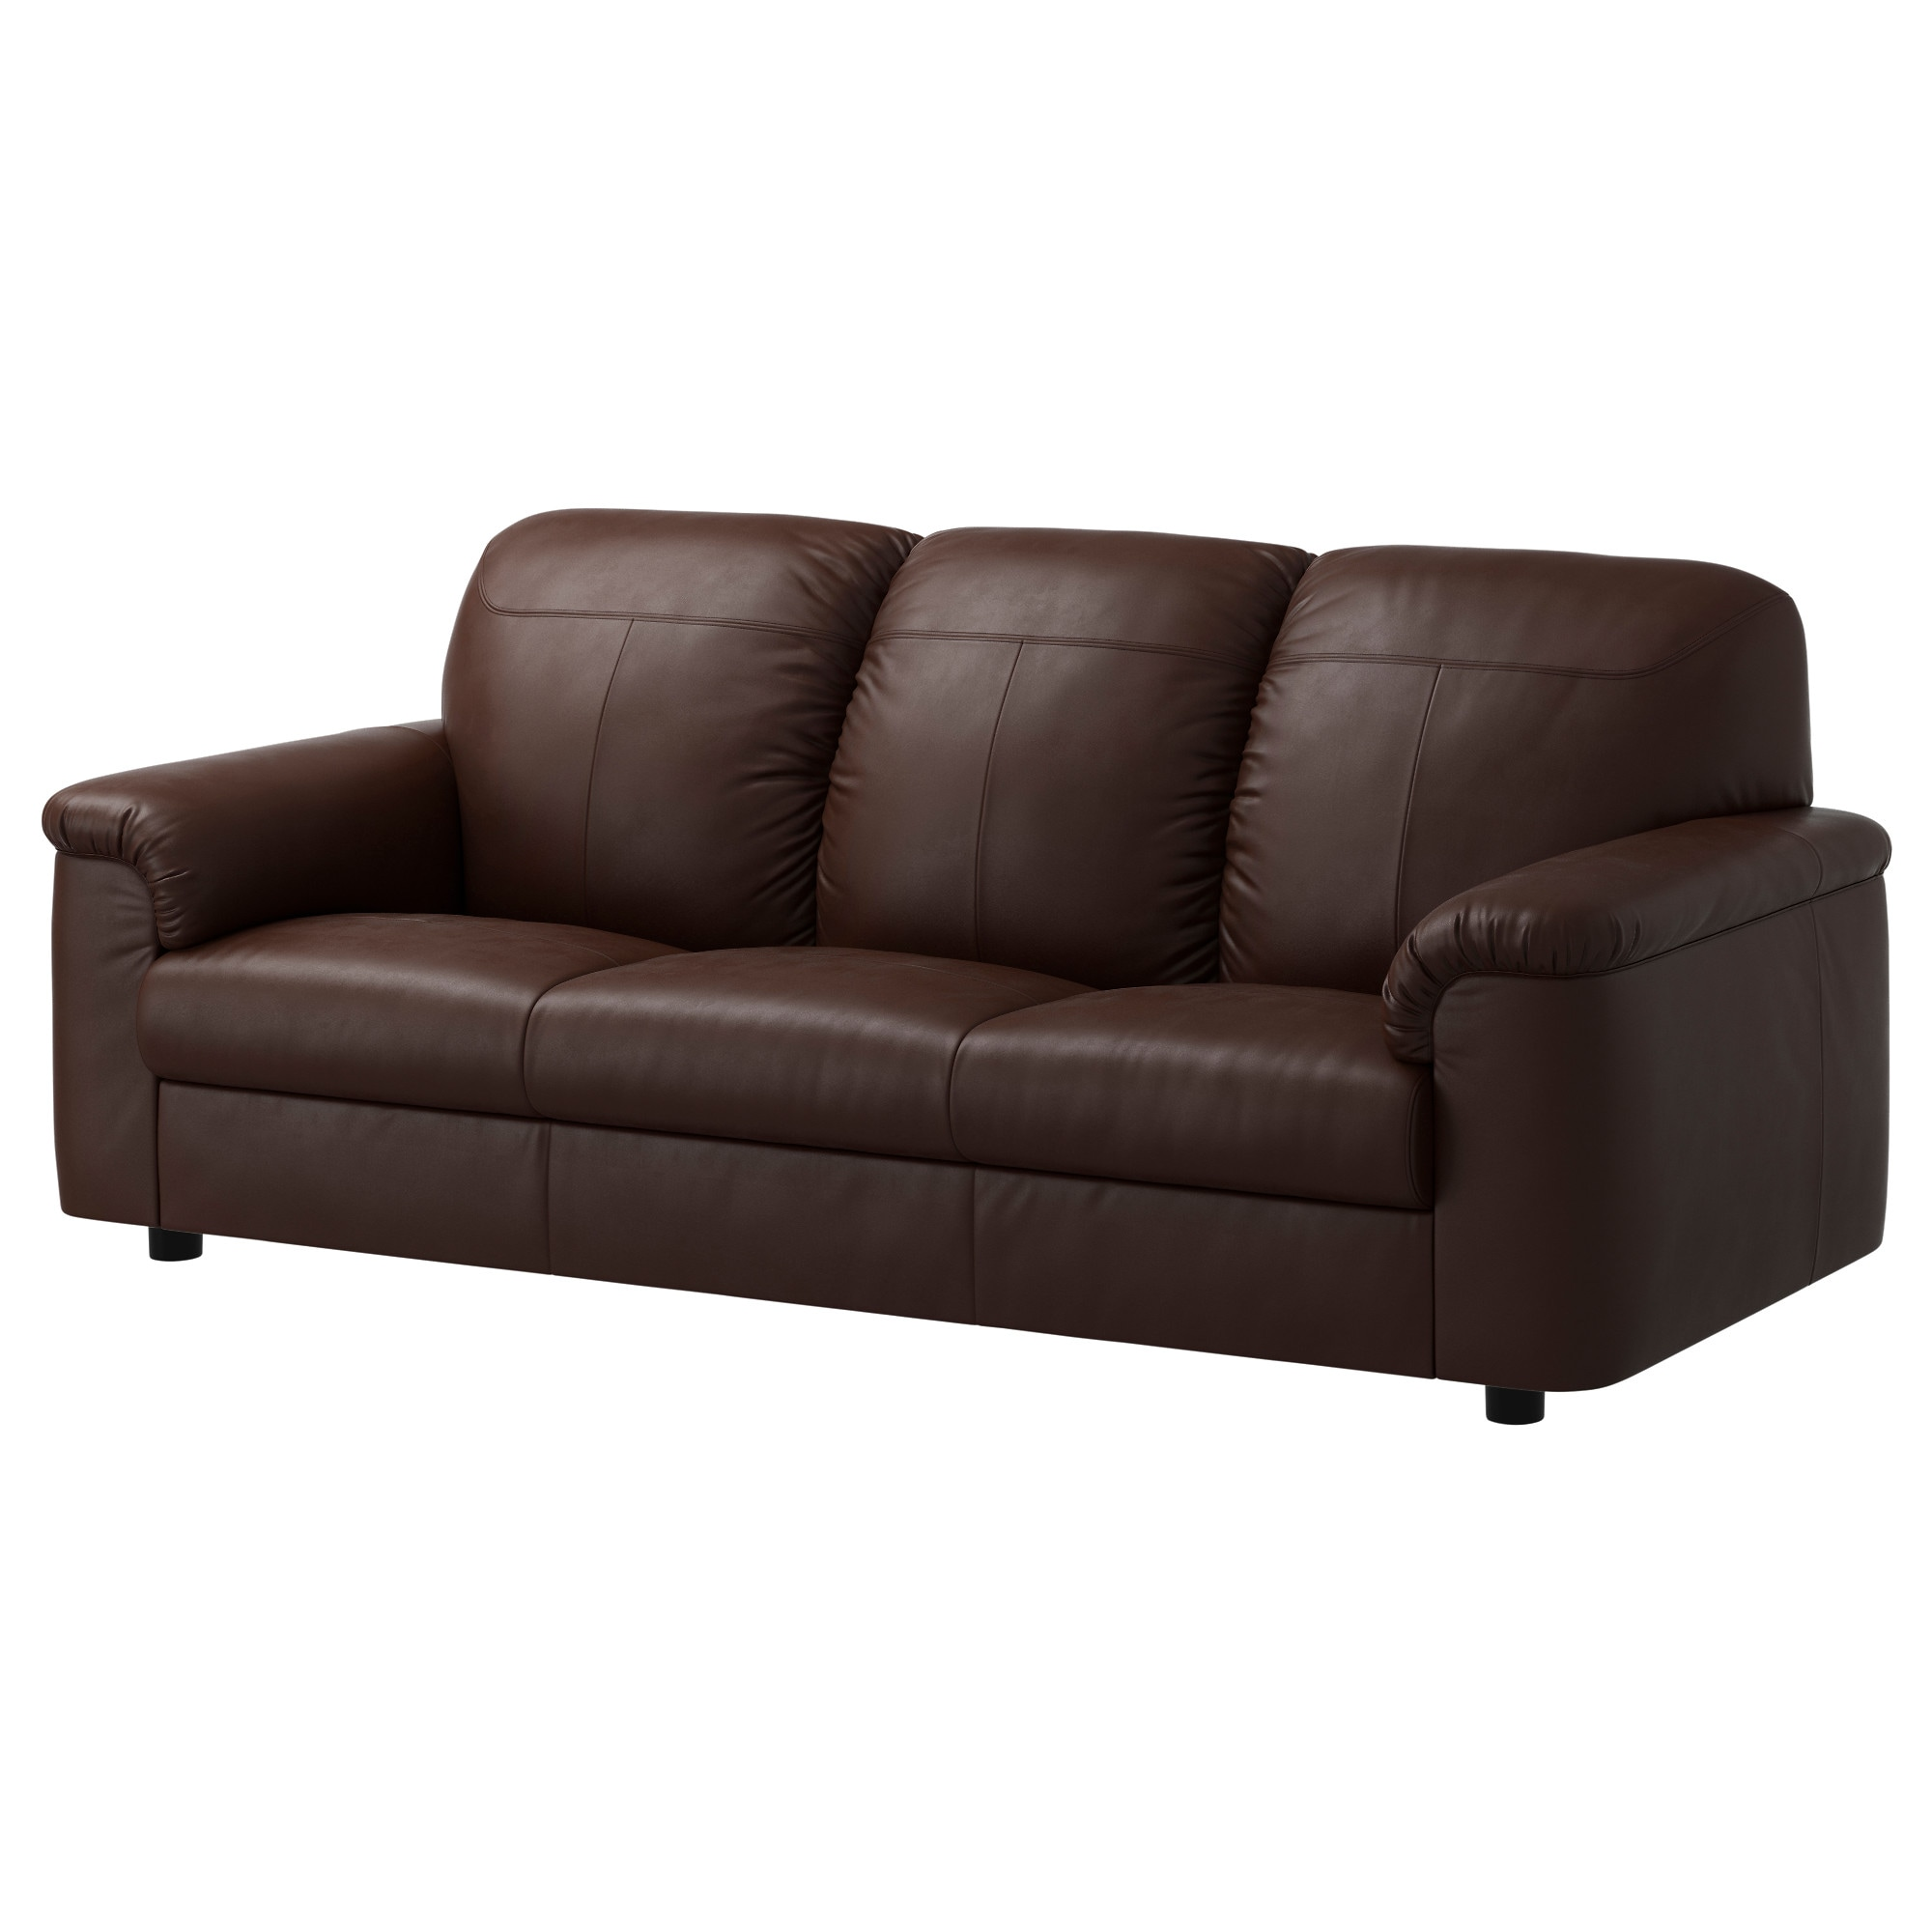 Superieur TIMSFORS Sofa   Mjuk/Kimstad Dark Brown   IKEA